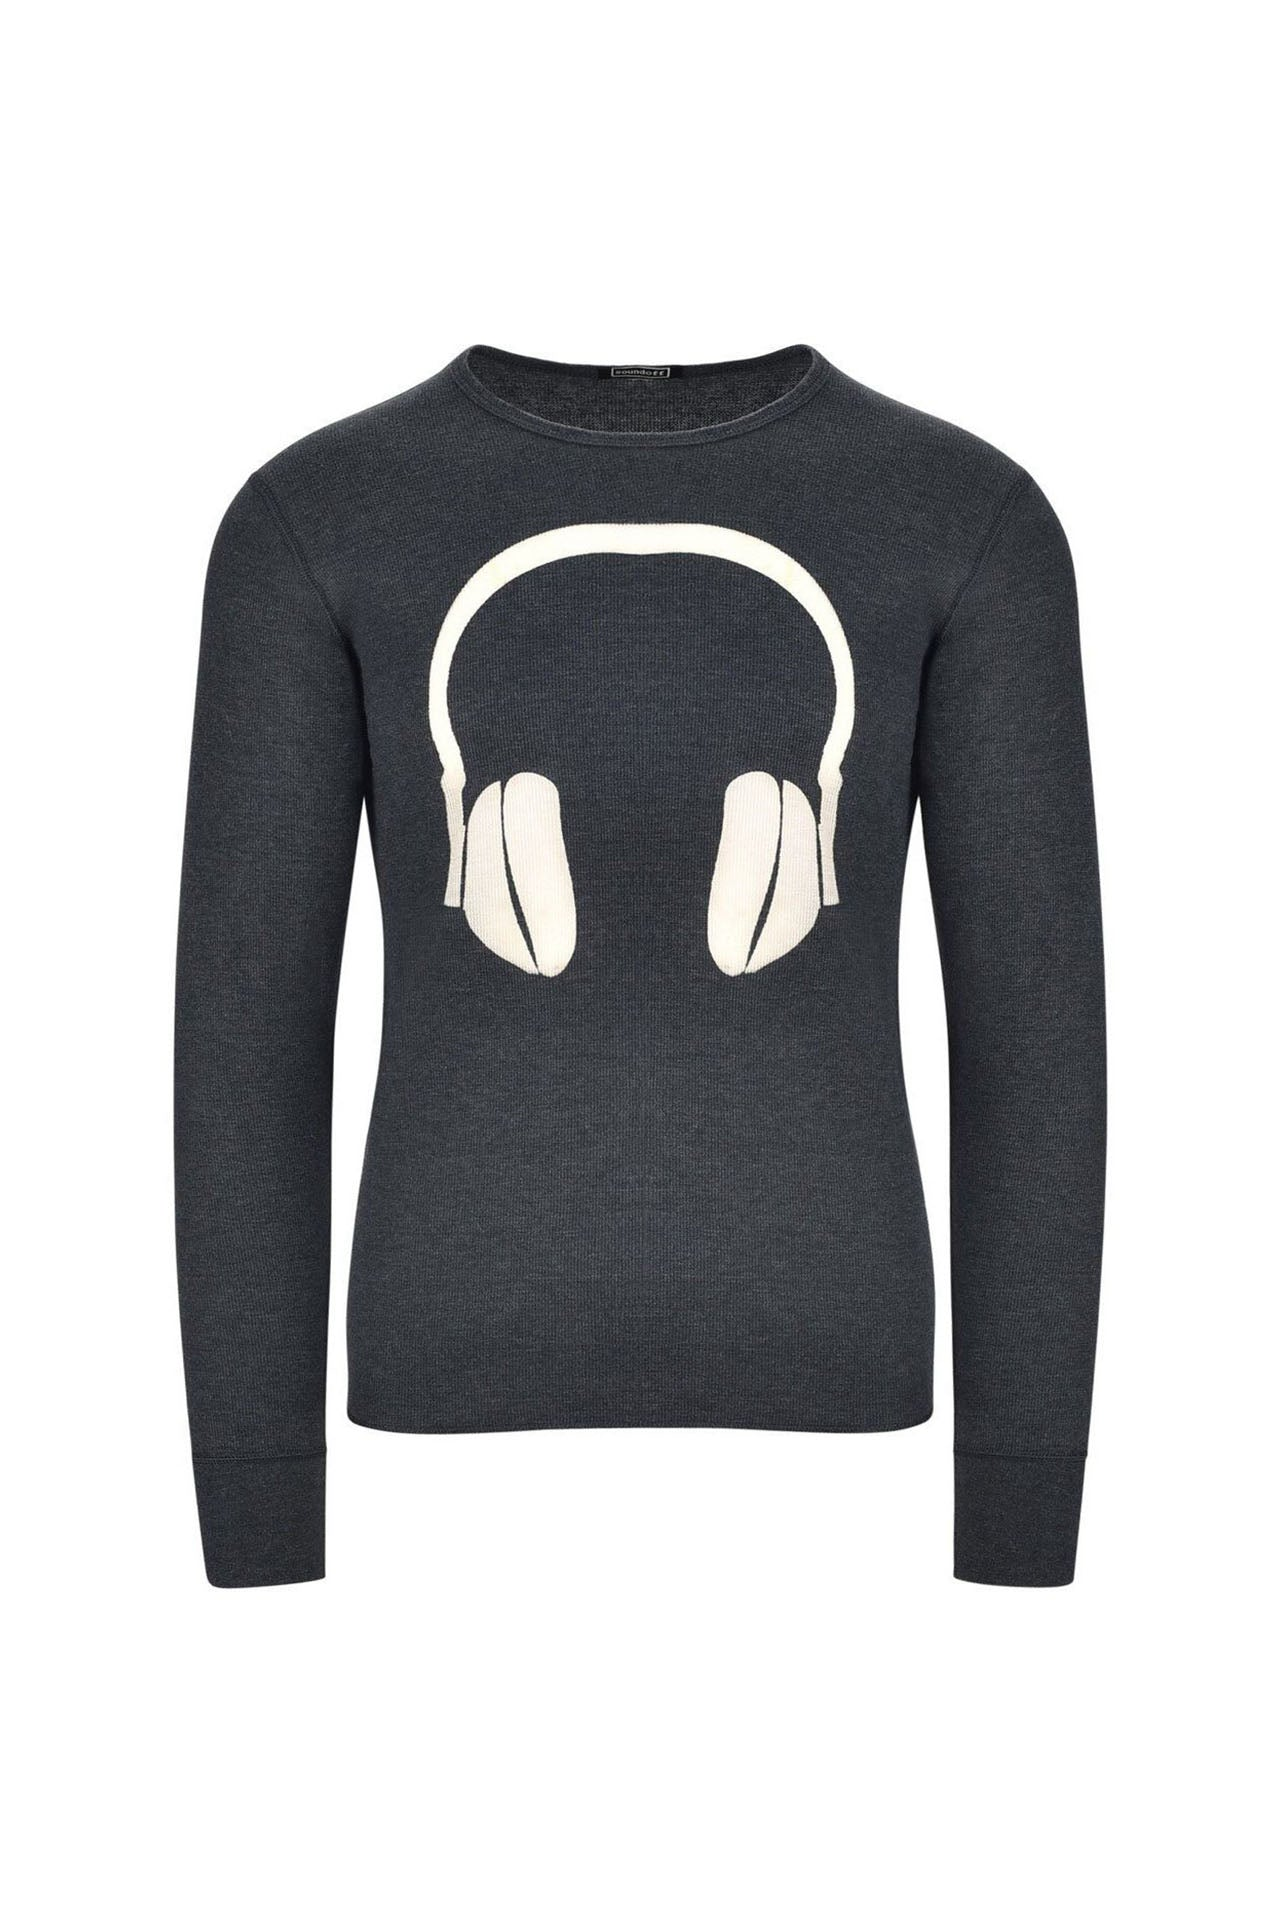 SOUNDOFF Headphone Logo Thermal Long Sleeve Shirt